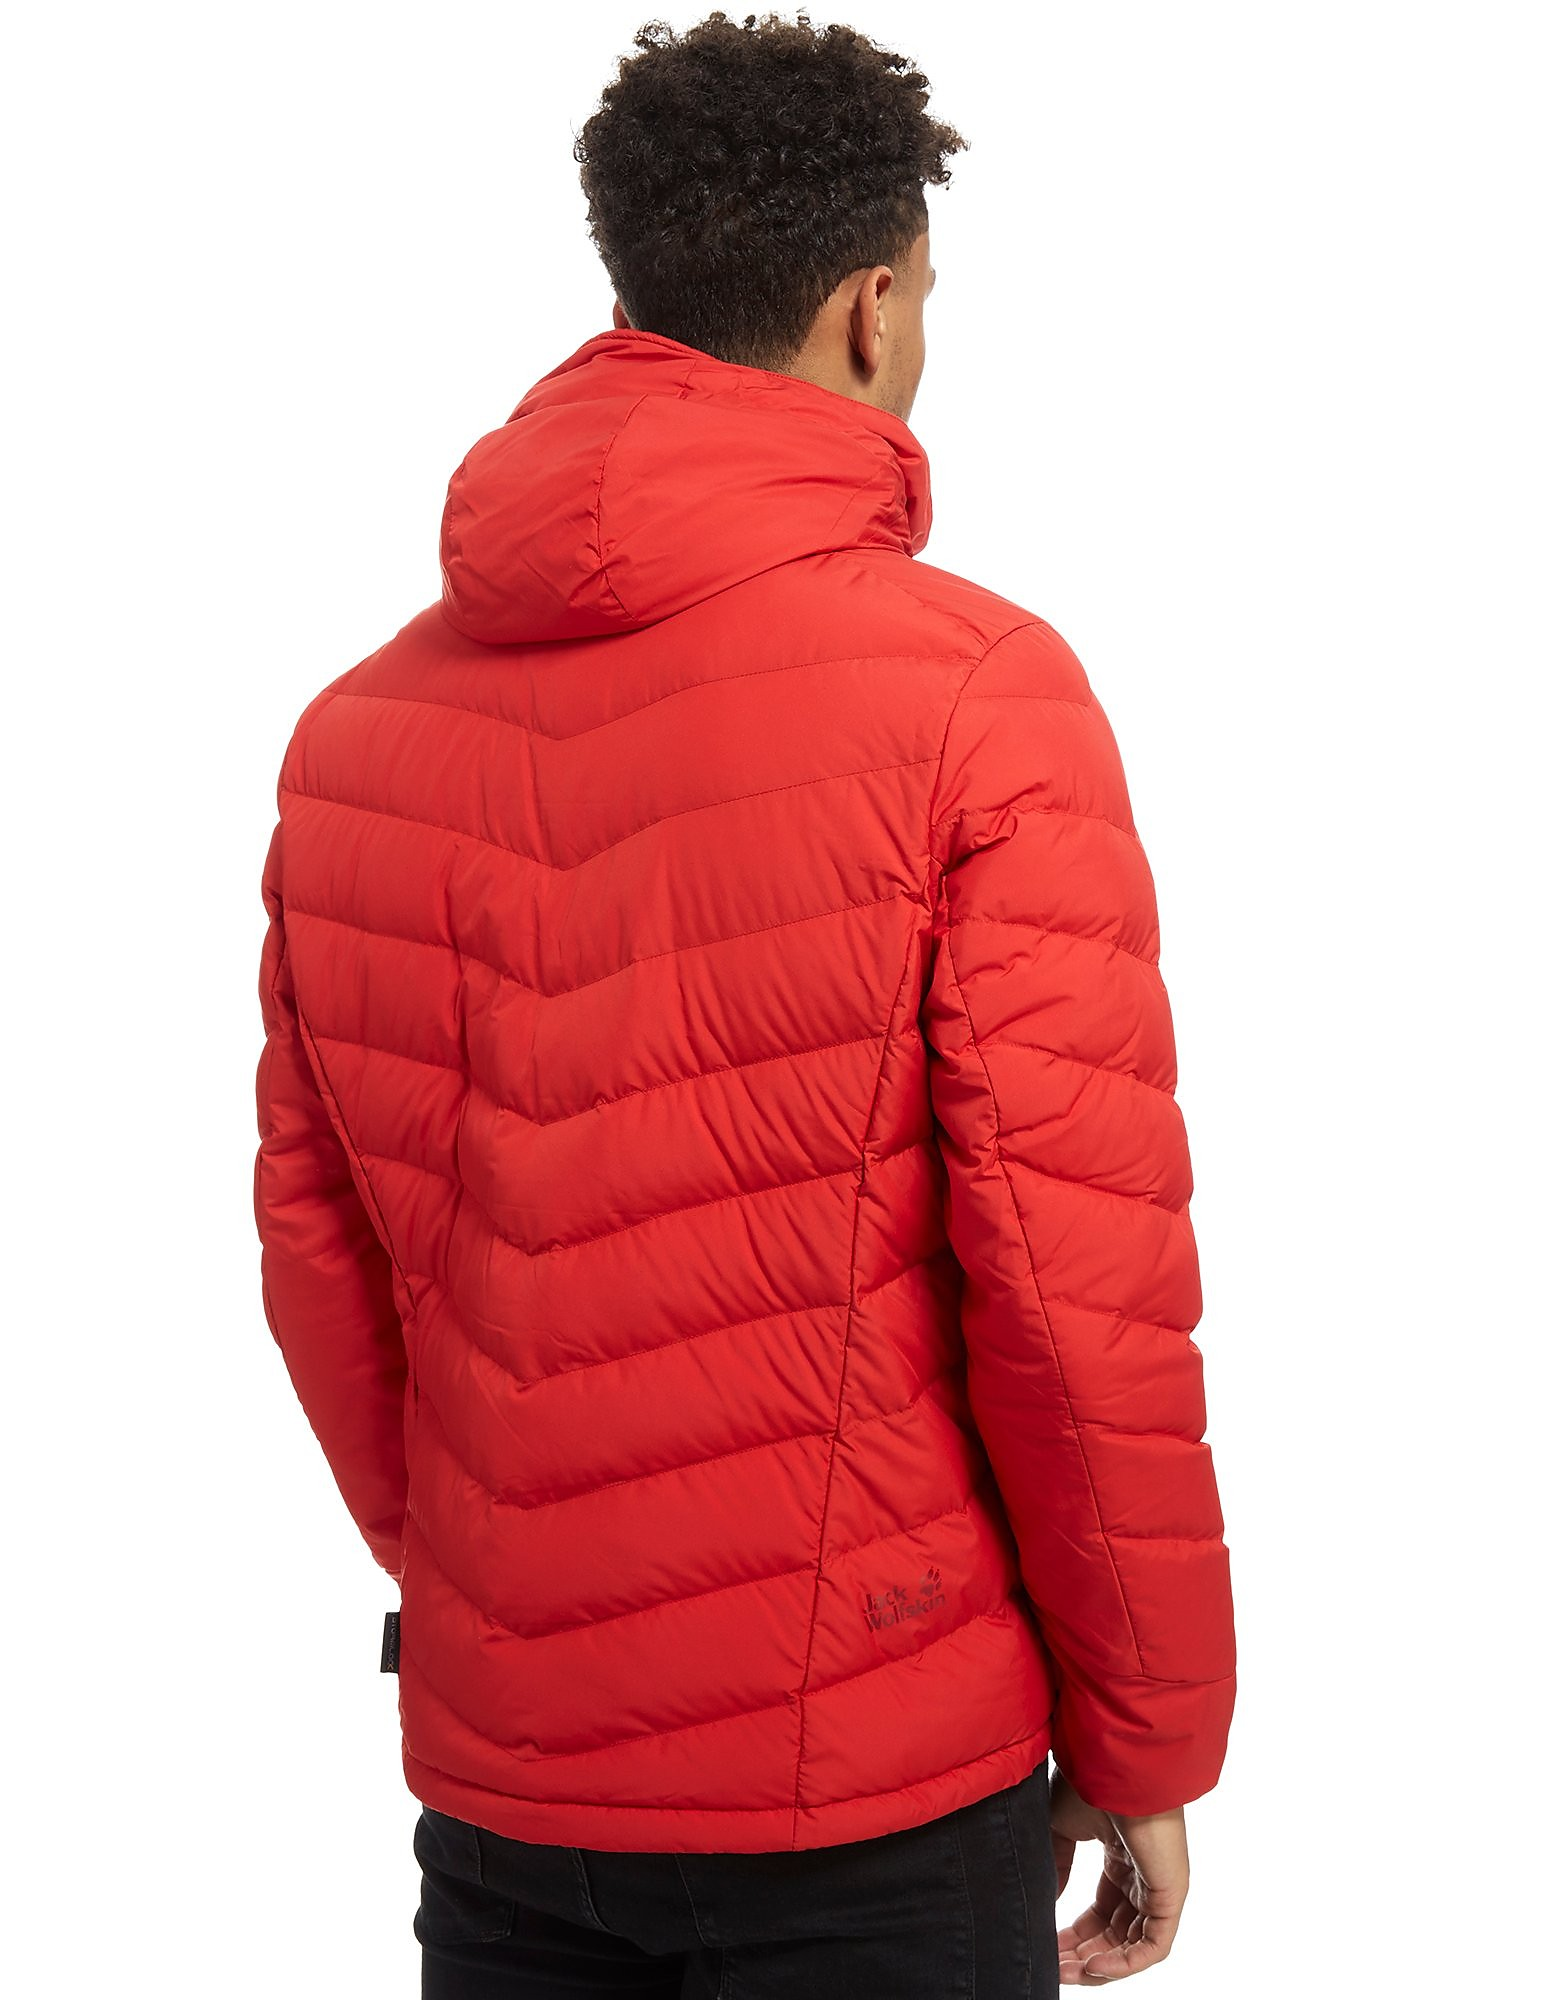 Jack Wolfskin Fairmont Down Men's Jacket